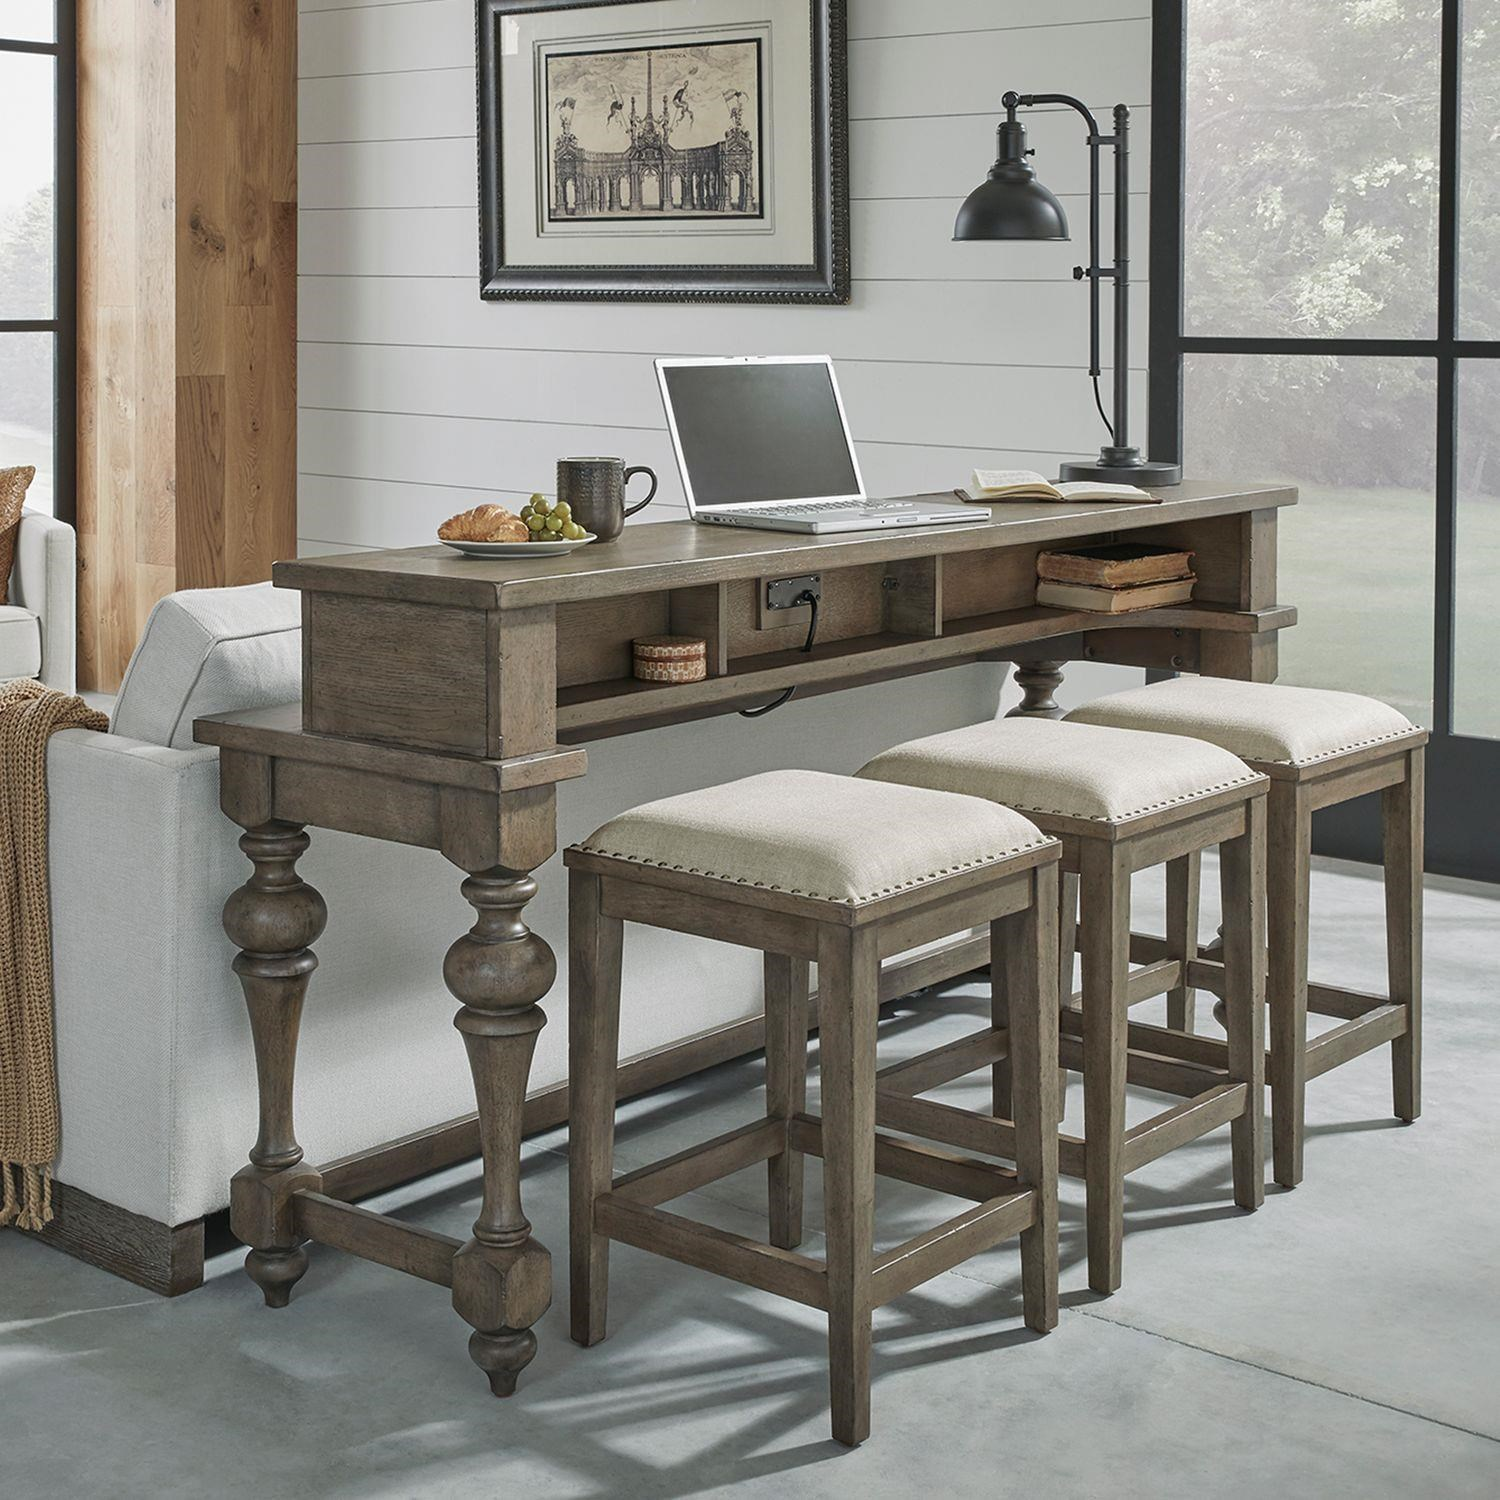 Americana Farmhouse Console Table and Stools by Liberty Furniture at Johnny Janosik